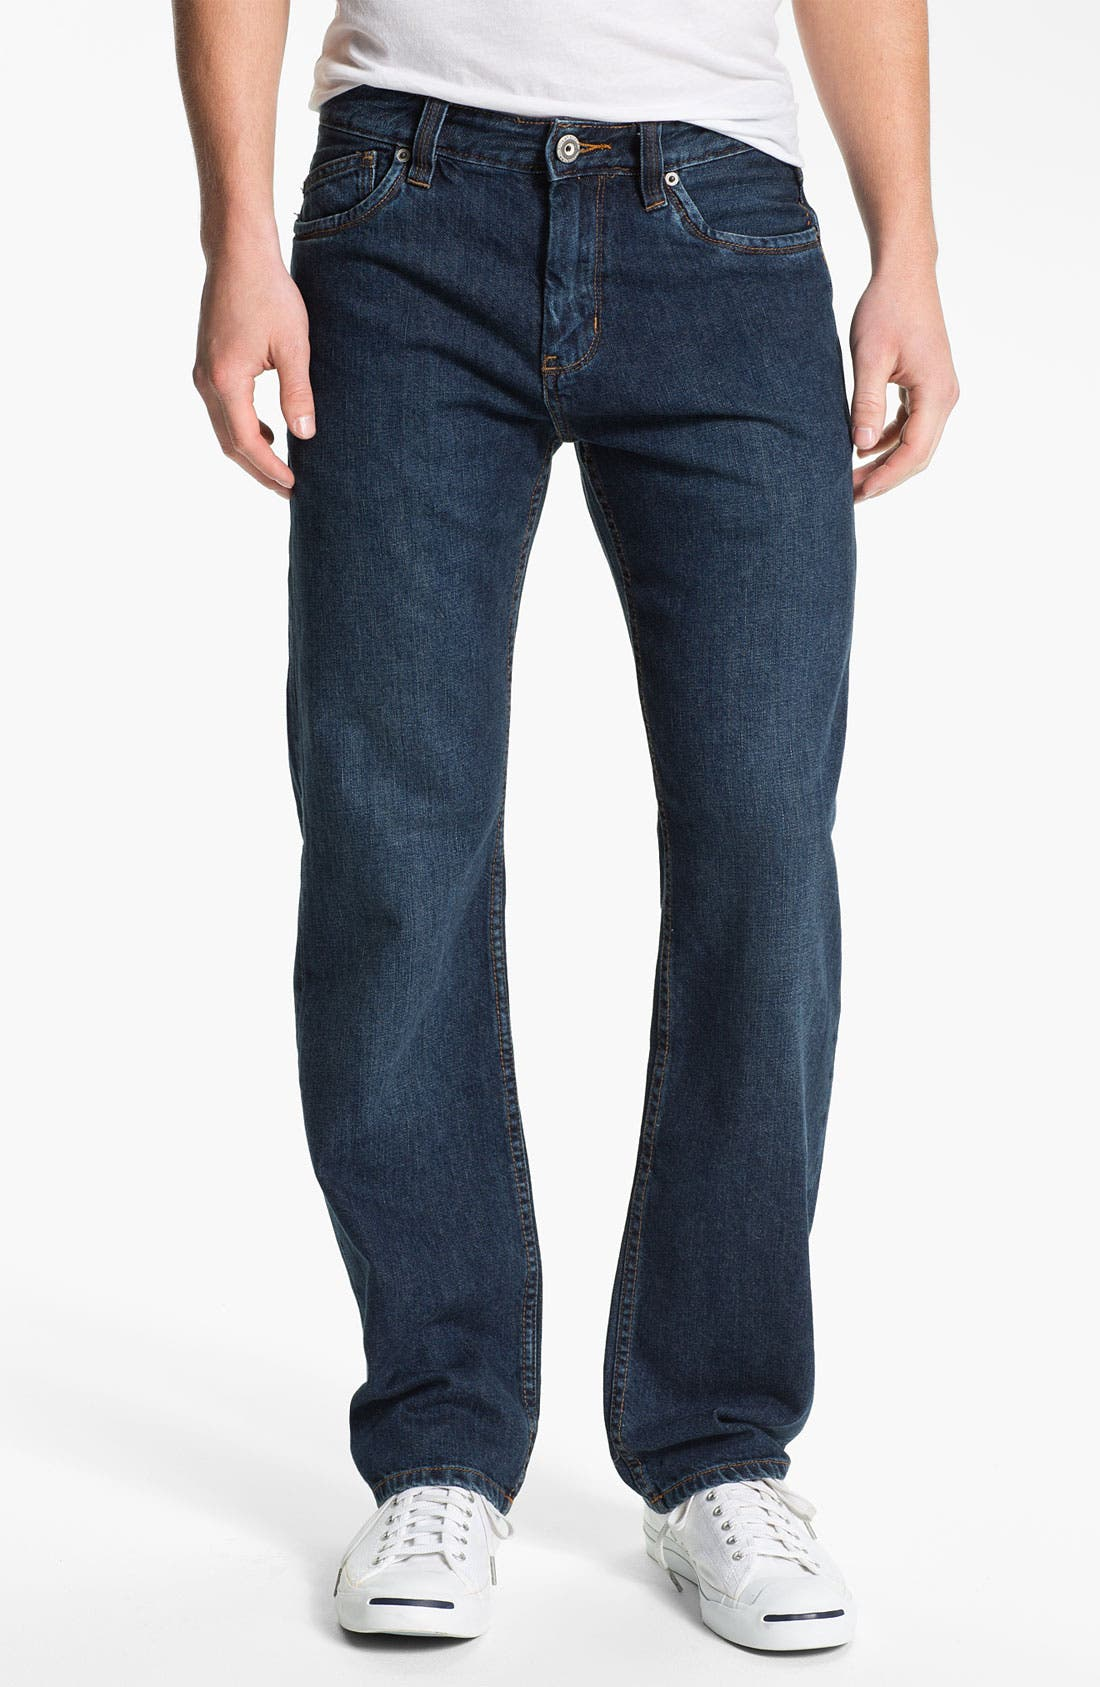 Alternate Image 1 Selected - Tommy Bahama Denim 'Steve Standard Fit' Jeans (Dark)